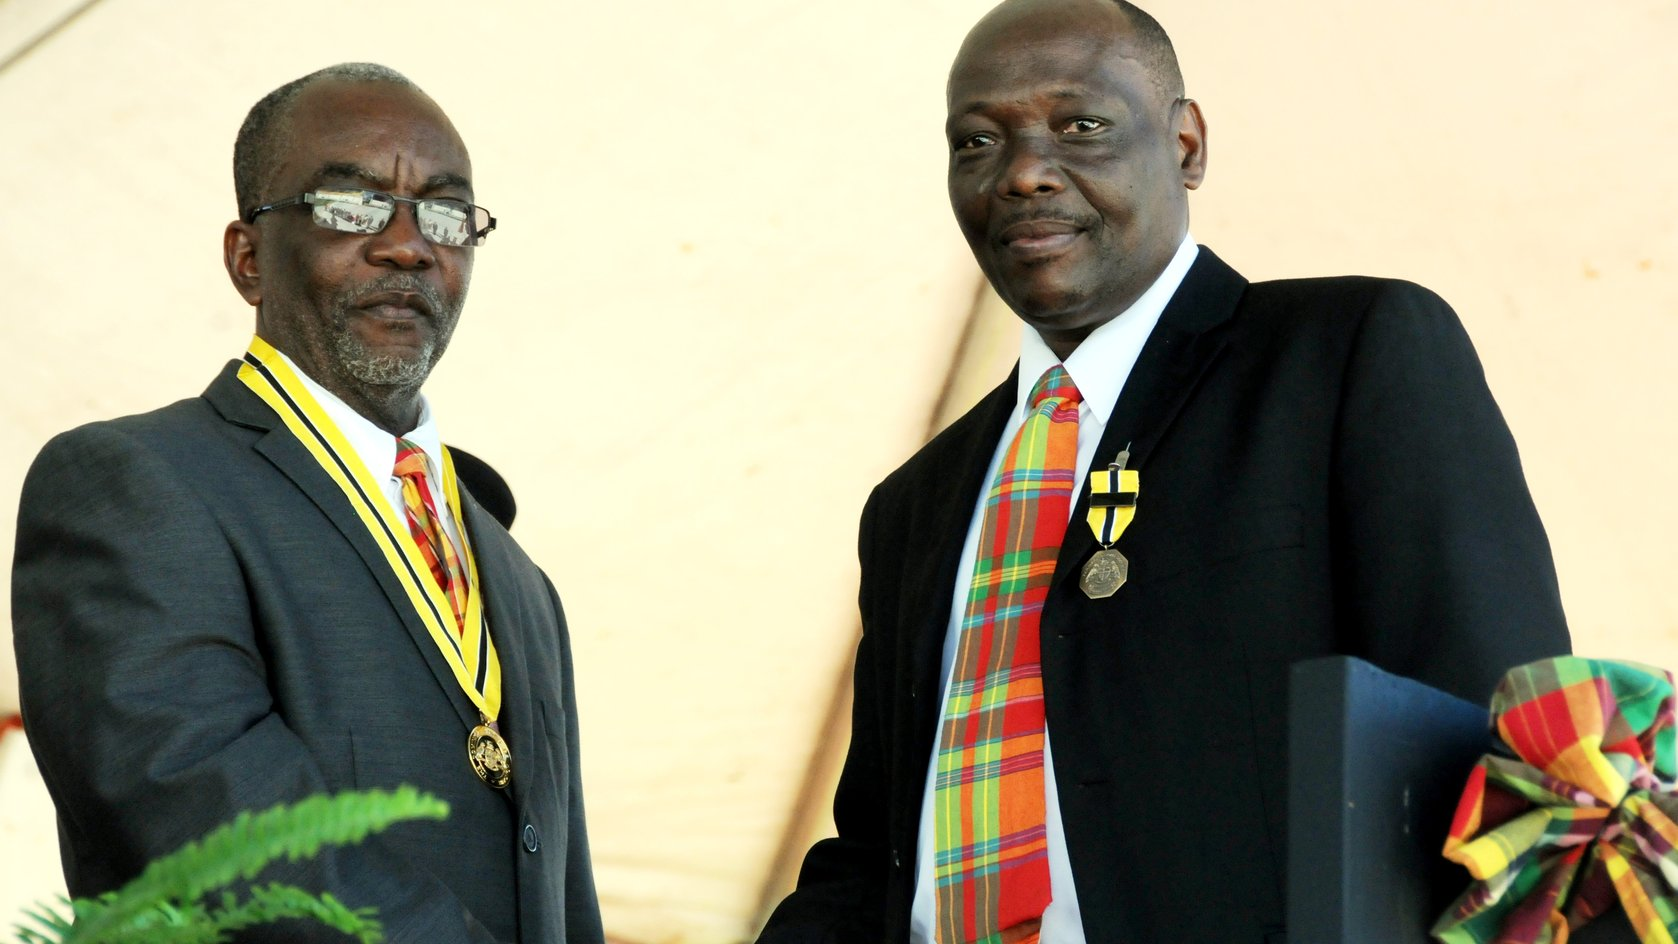 Bishop Bill Daniel,right, received award from President Eliud Williams in 2012